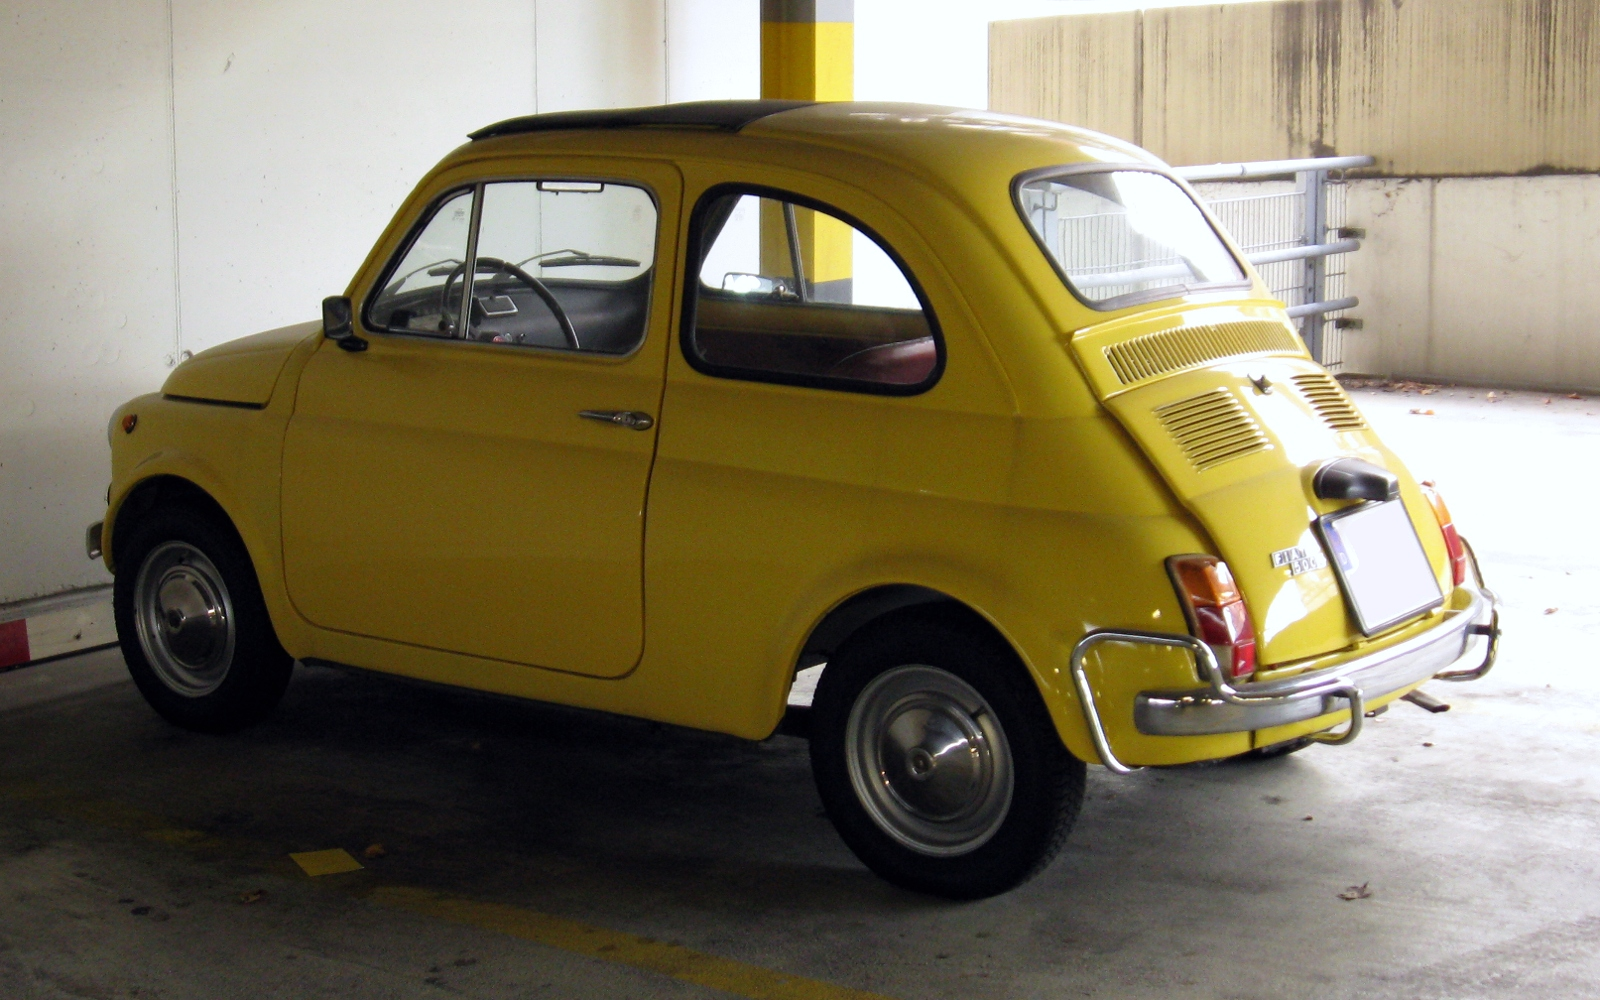 File:Fiat 500 in Munich (2009-11).jpg - Wikimedia Commons